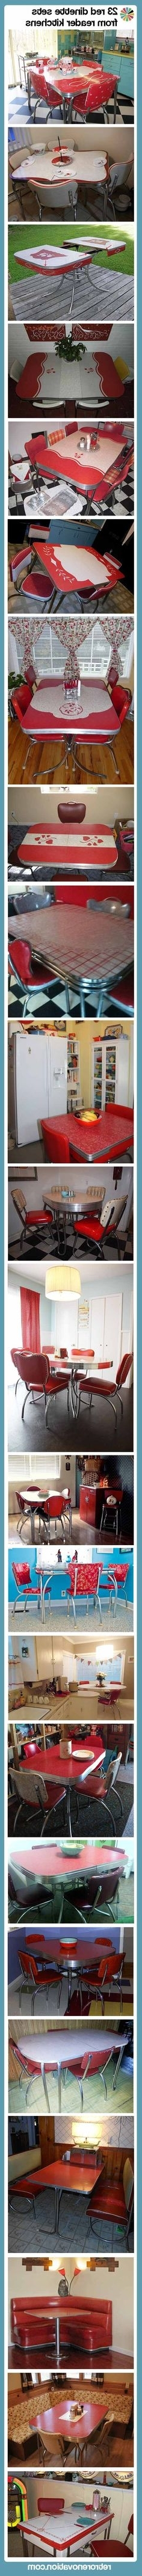 371 Best Dinette Sets Images On Pinterest In (View 22 of 25)